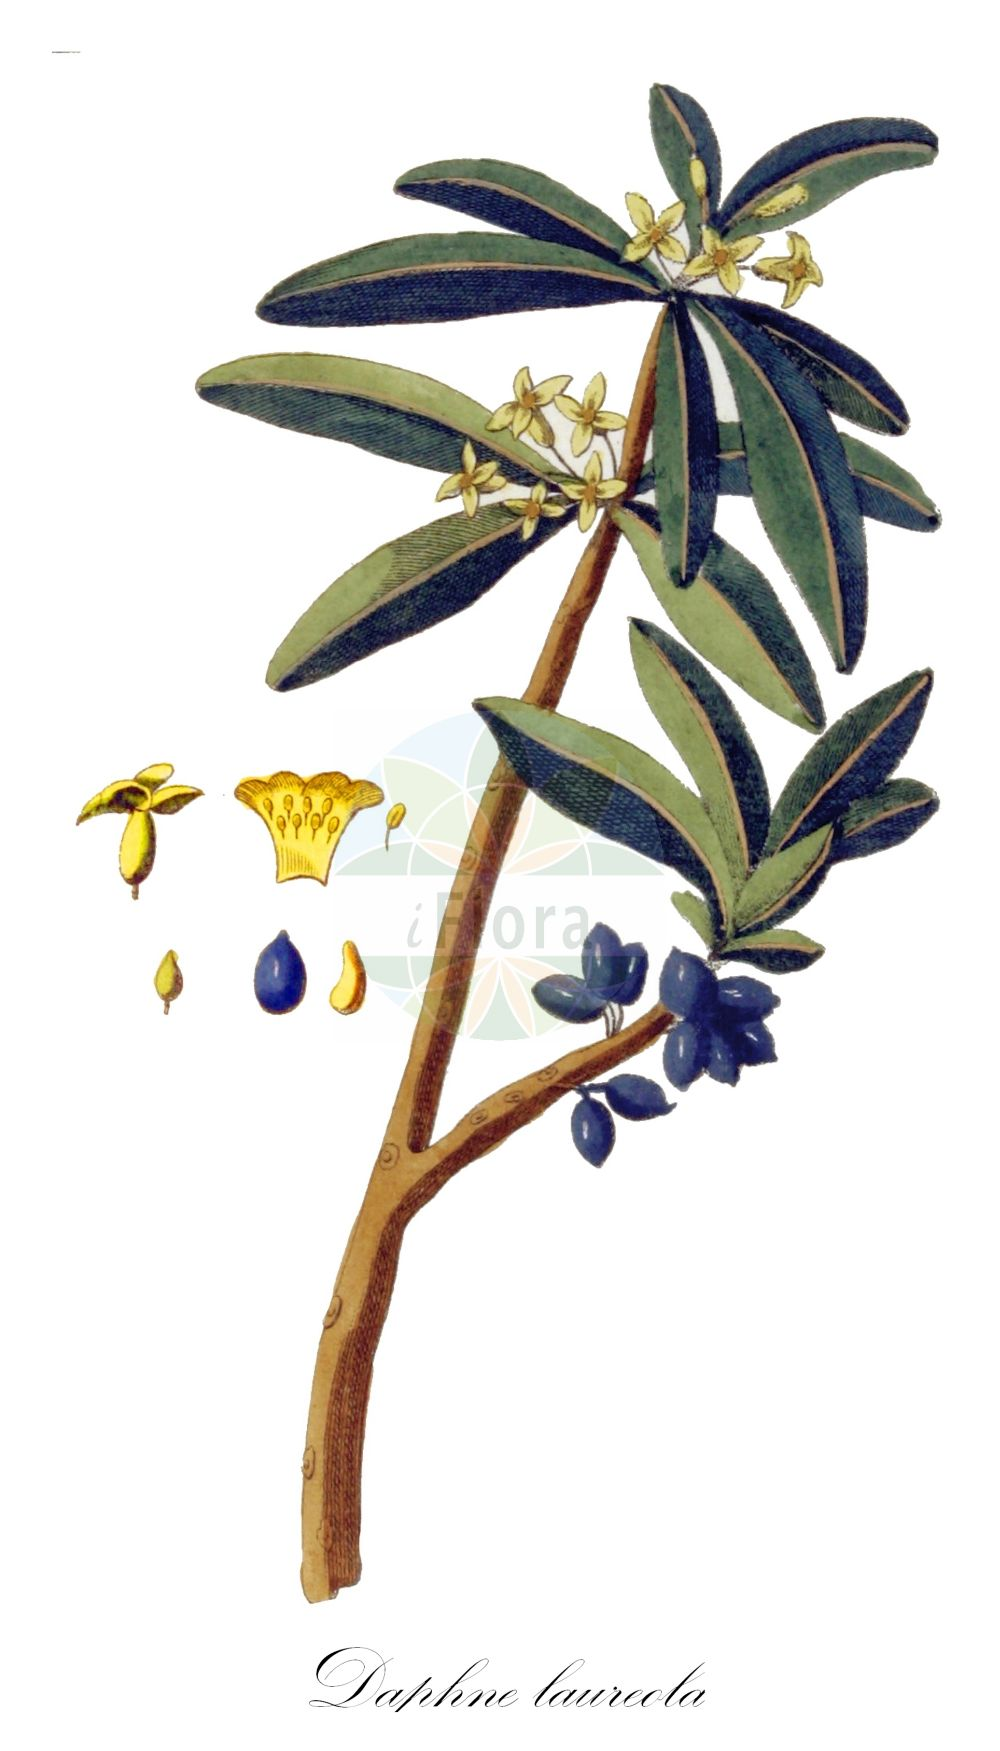 Historische Abbildung von Daphne laureola (Lorbeer-Seidelbast - Spurge-laurel). Das Bild zeigt Blatt, Bluete, Frucht und Same. ---- Historical Drawing of Daphne laureola (Lorbeer-Seidelbast - Spurge-laurel).The image is showing leaf, flower, fruit and seed. (Daphne laureola,Lorbeer-Seidelbast,Spurge-laurel,Daphne philippi,Wood Laurel,Daphne,Seidelbast,Daphne,Thymelaeaceae,Spatzenzungengewaechse;Seidelbastgewaechse,Daphne family,Blatt,Bluete,Frucht,Same,leaf,flower,fruit,seed,Kops (1800-1934))